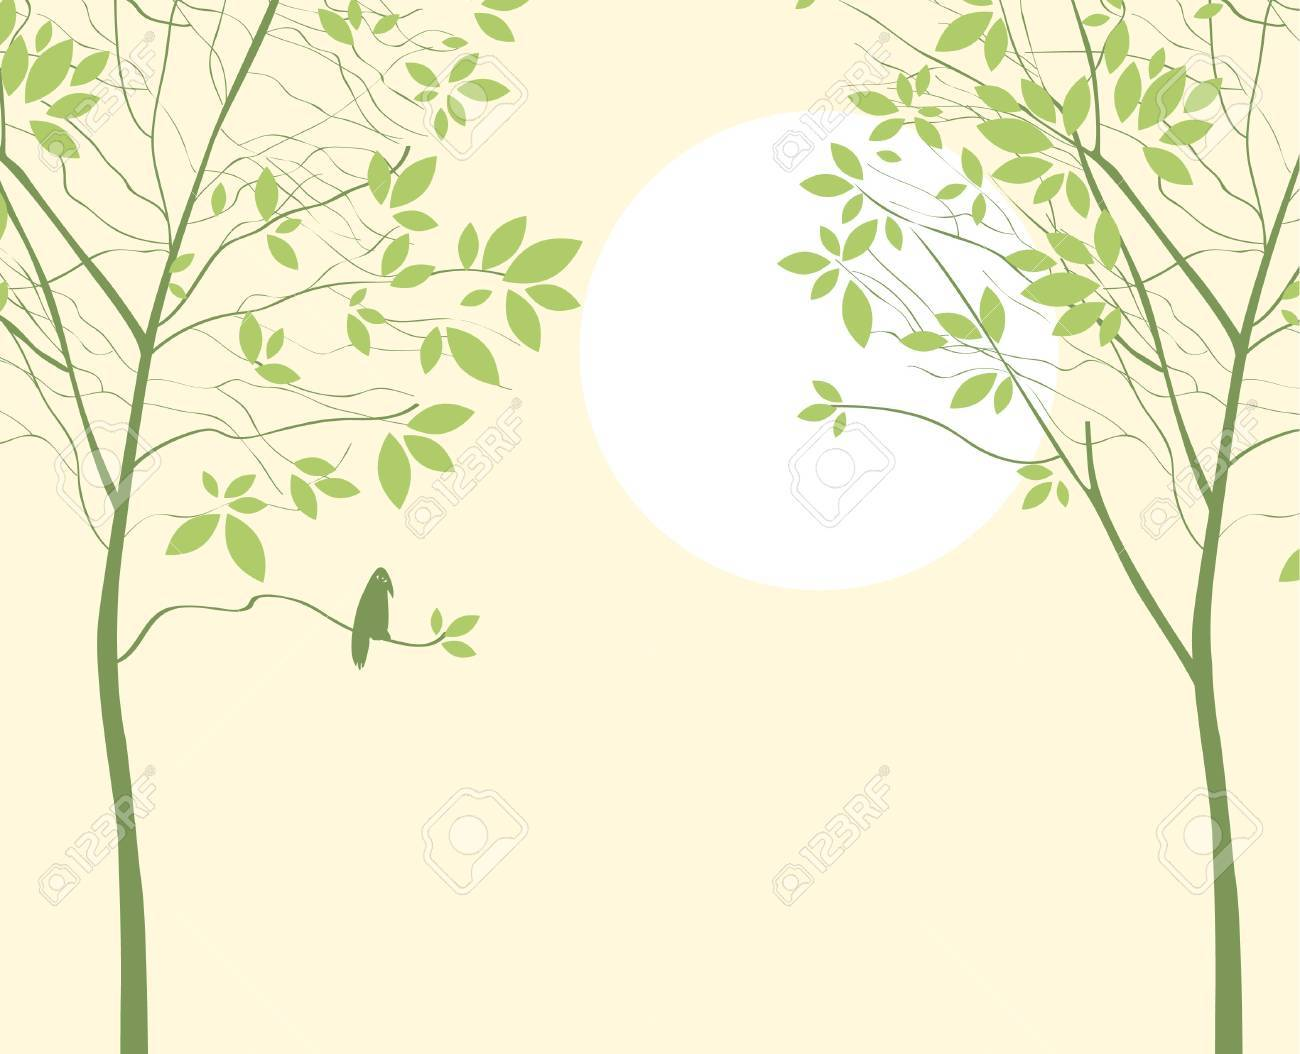 spring landscape with two trees sun and bird Stock Vector - 18754613